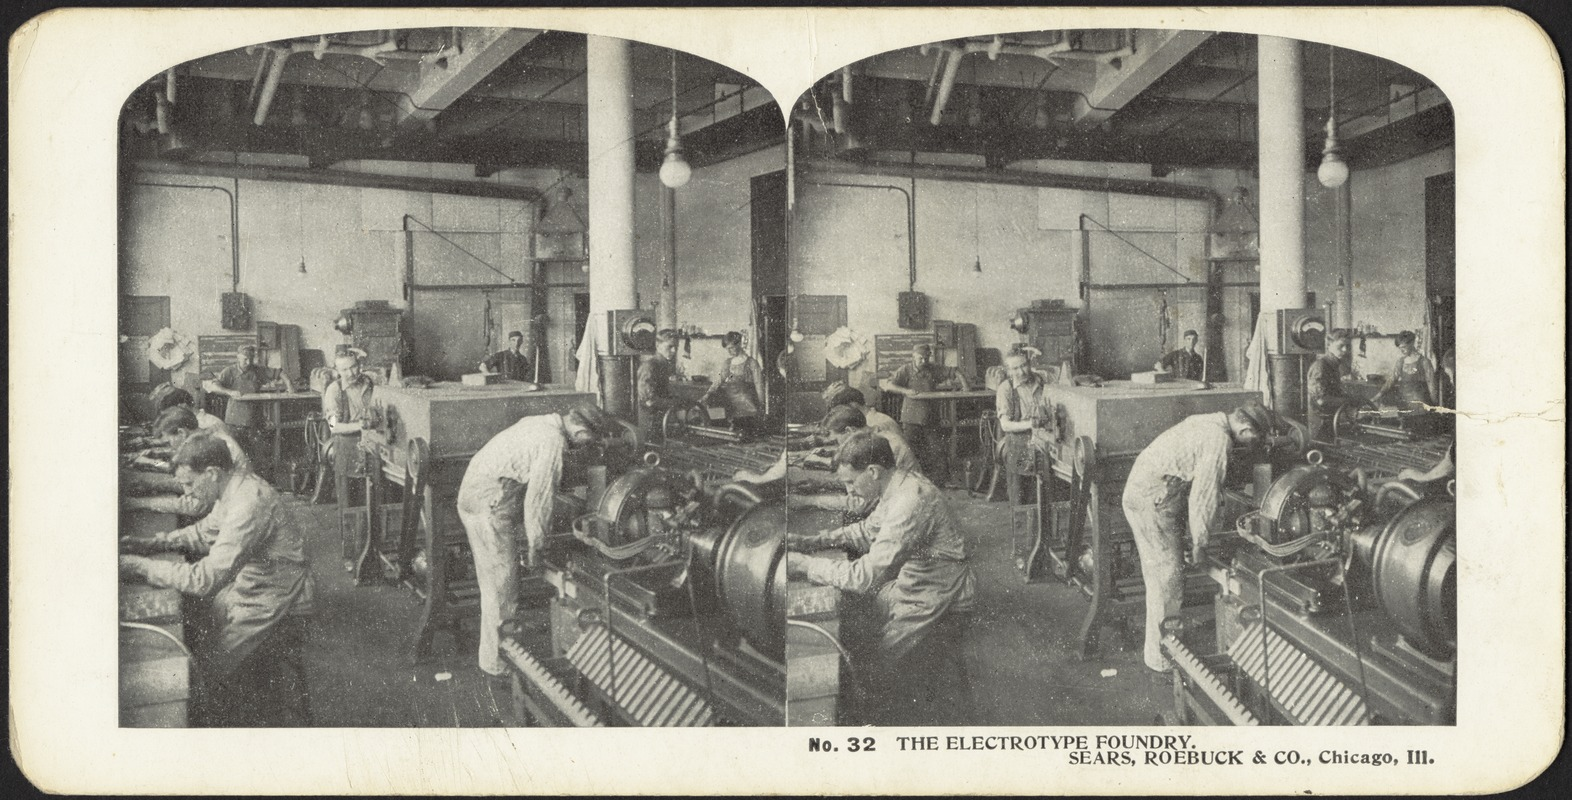 The electrotype foundry